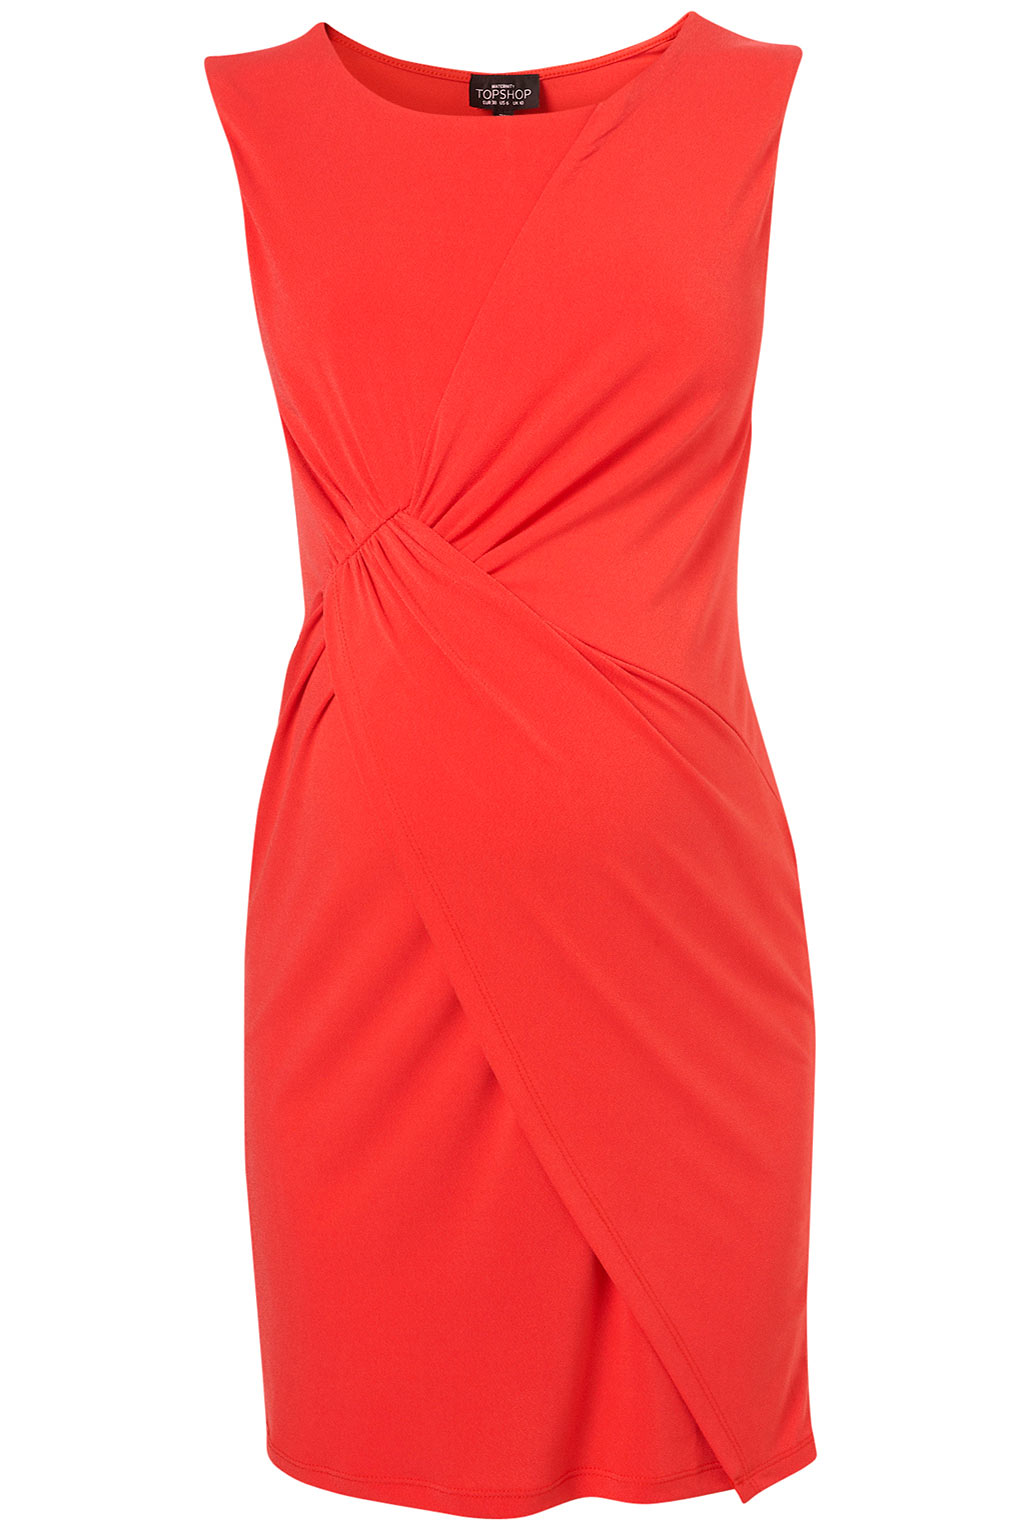 Does My Bump Look Good in This?: Best maternity dresses ...